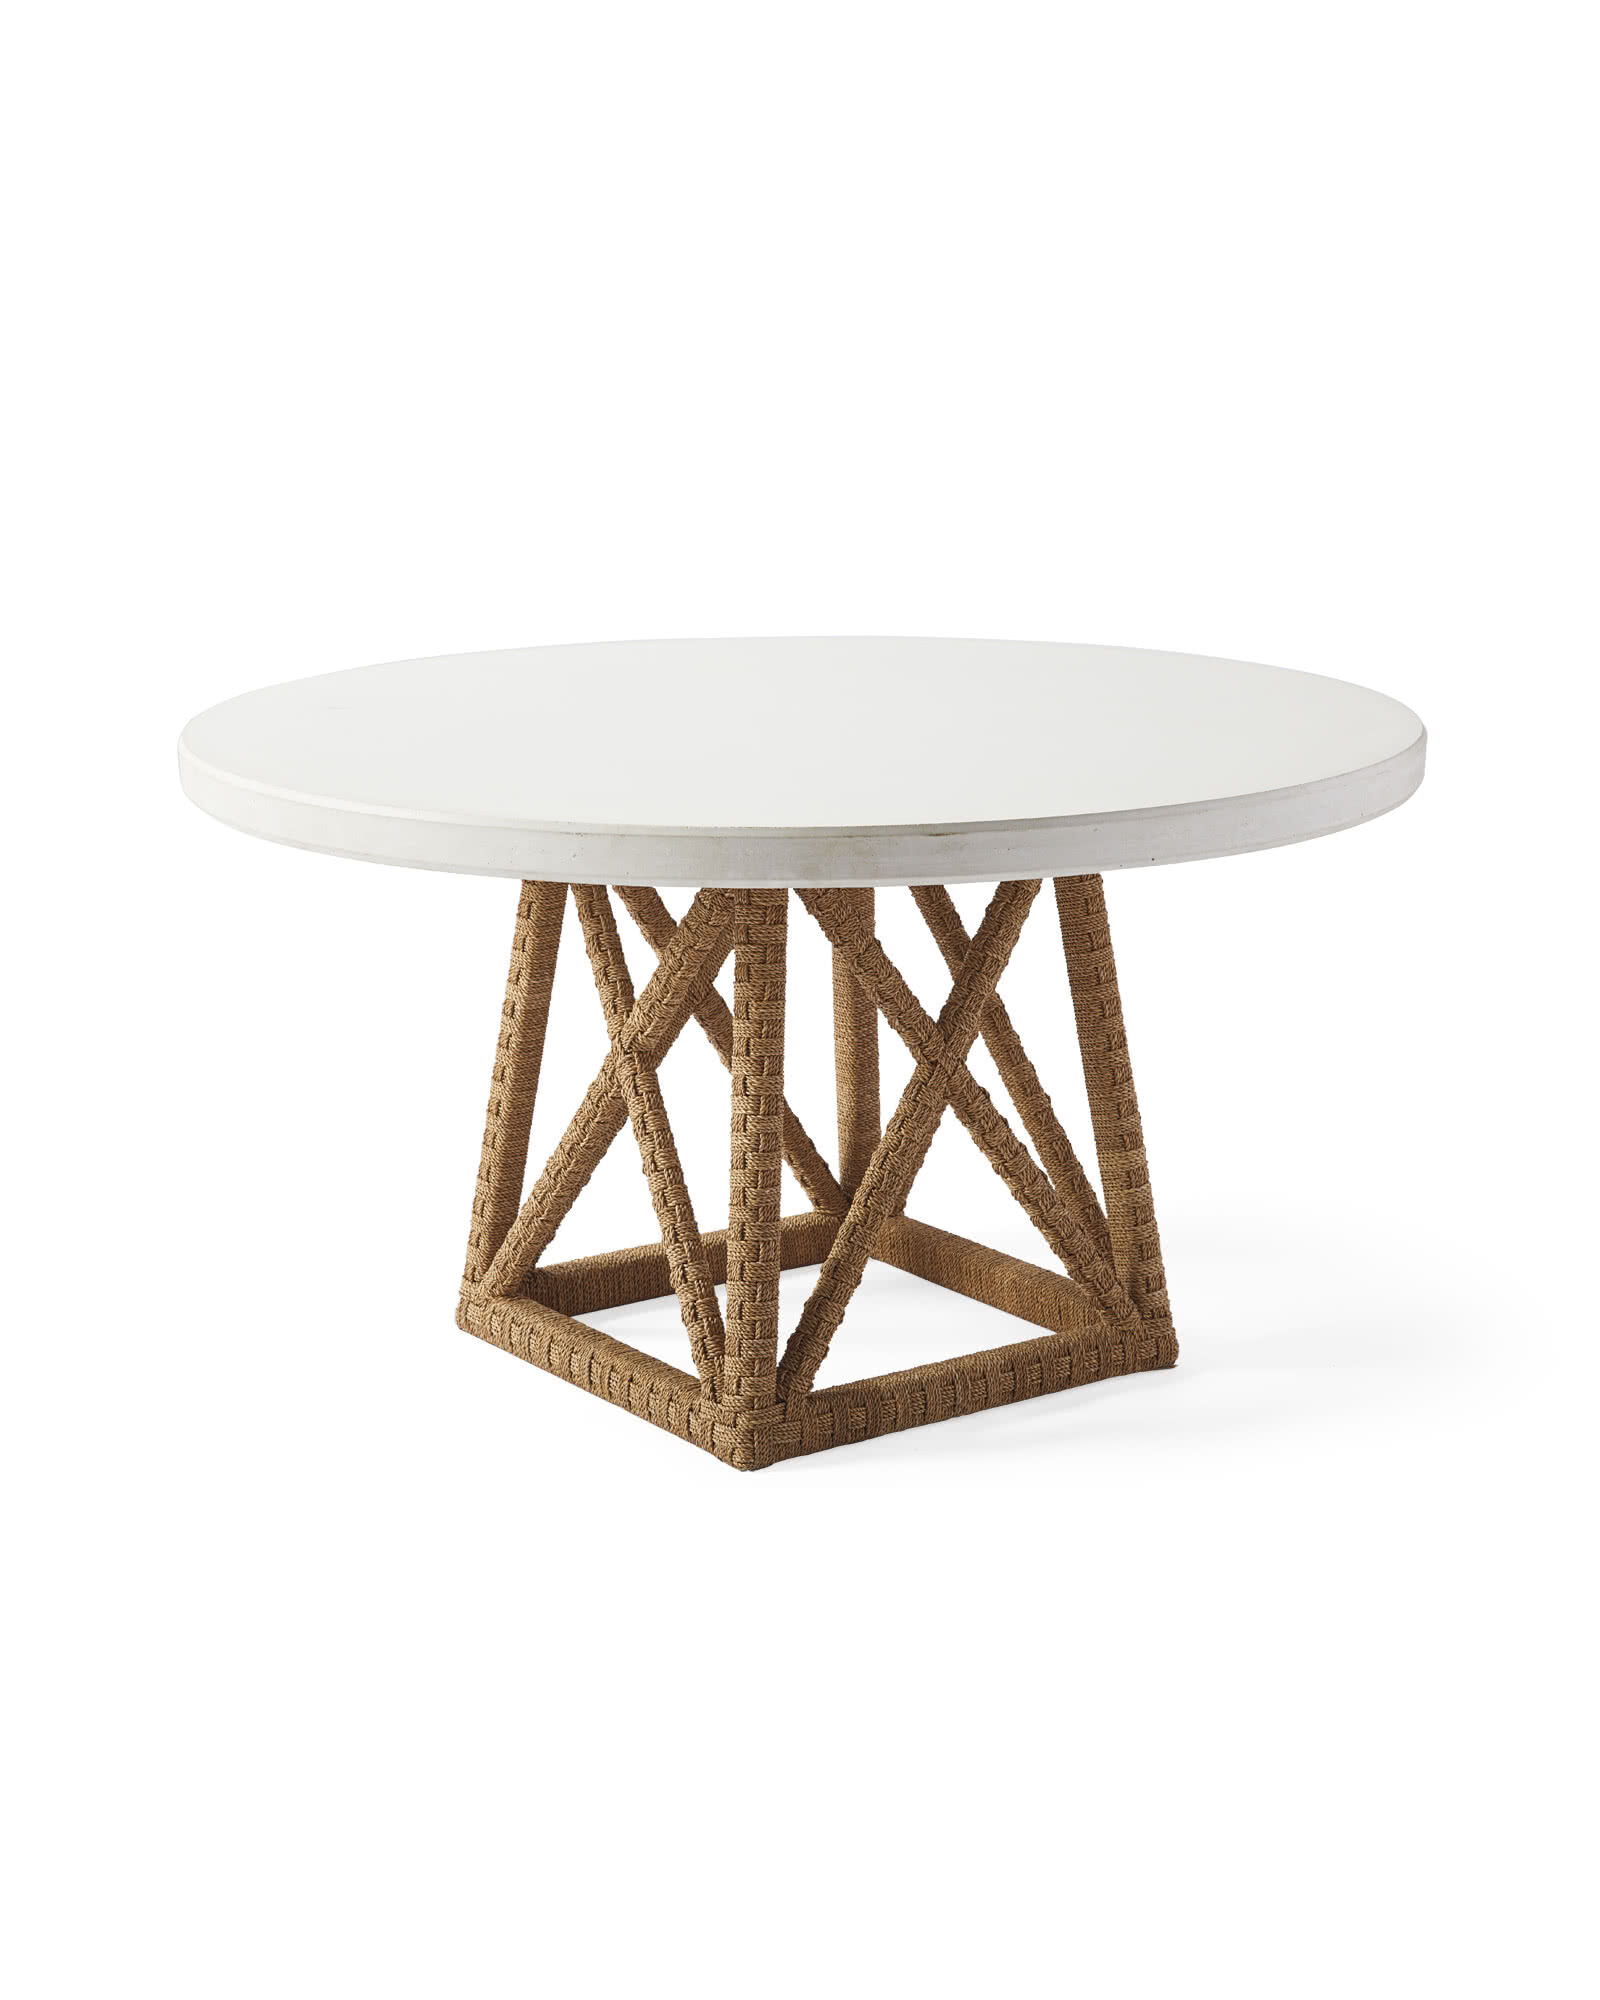 Thornhill Round Dining Table, White